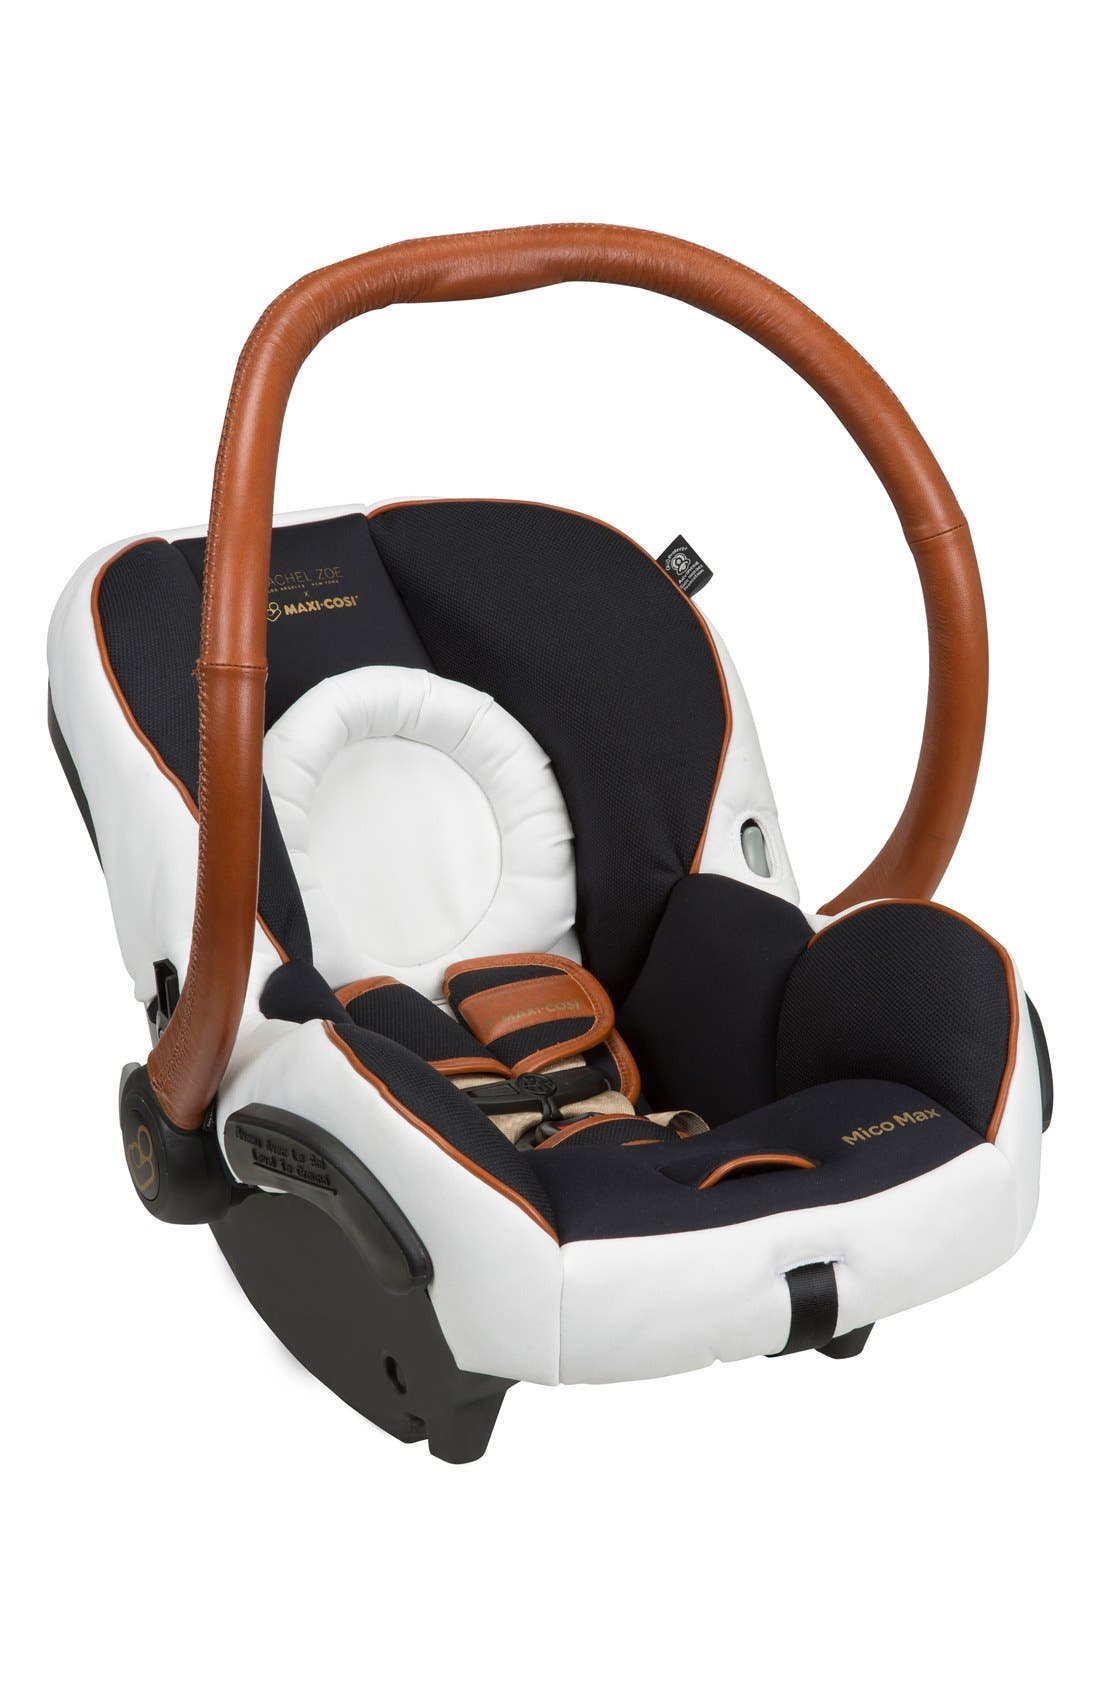 x Rachel Zoe Mico Max 30 - Special Edition Infant Car Seat,                             Main thumbnail 1, color,                             Black/ White